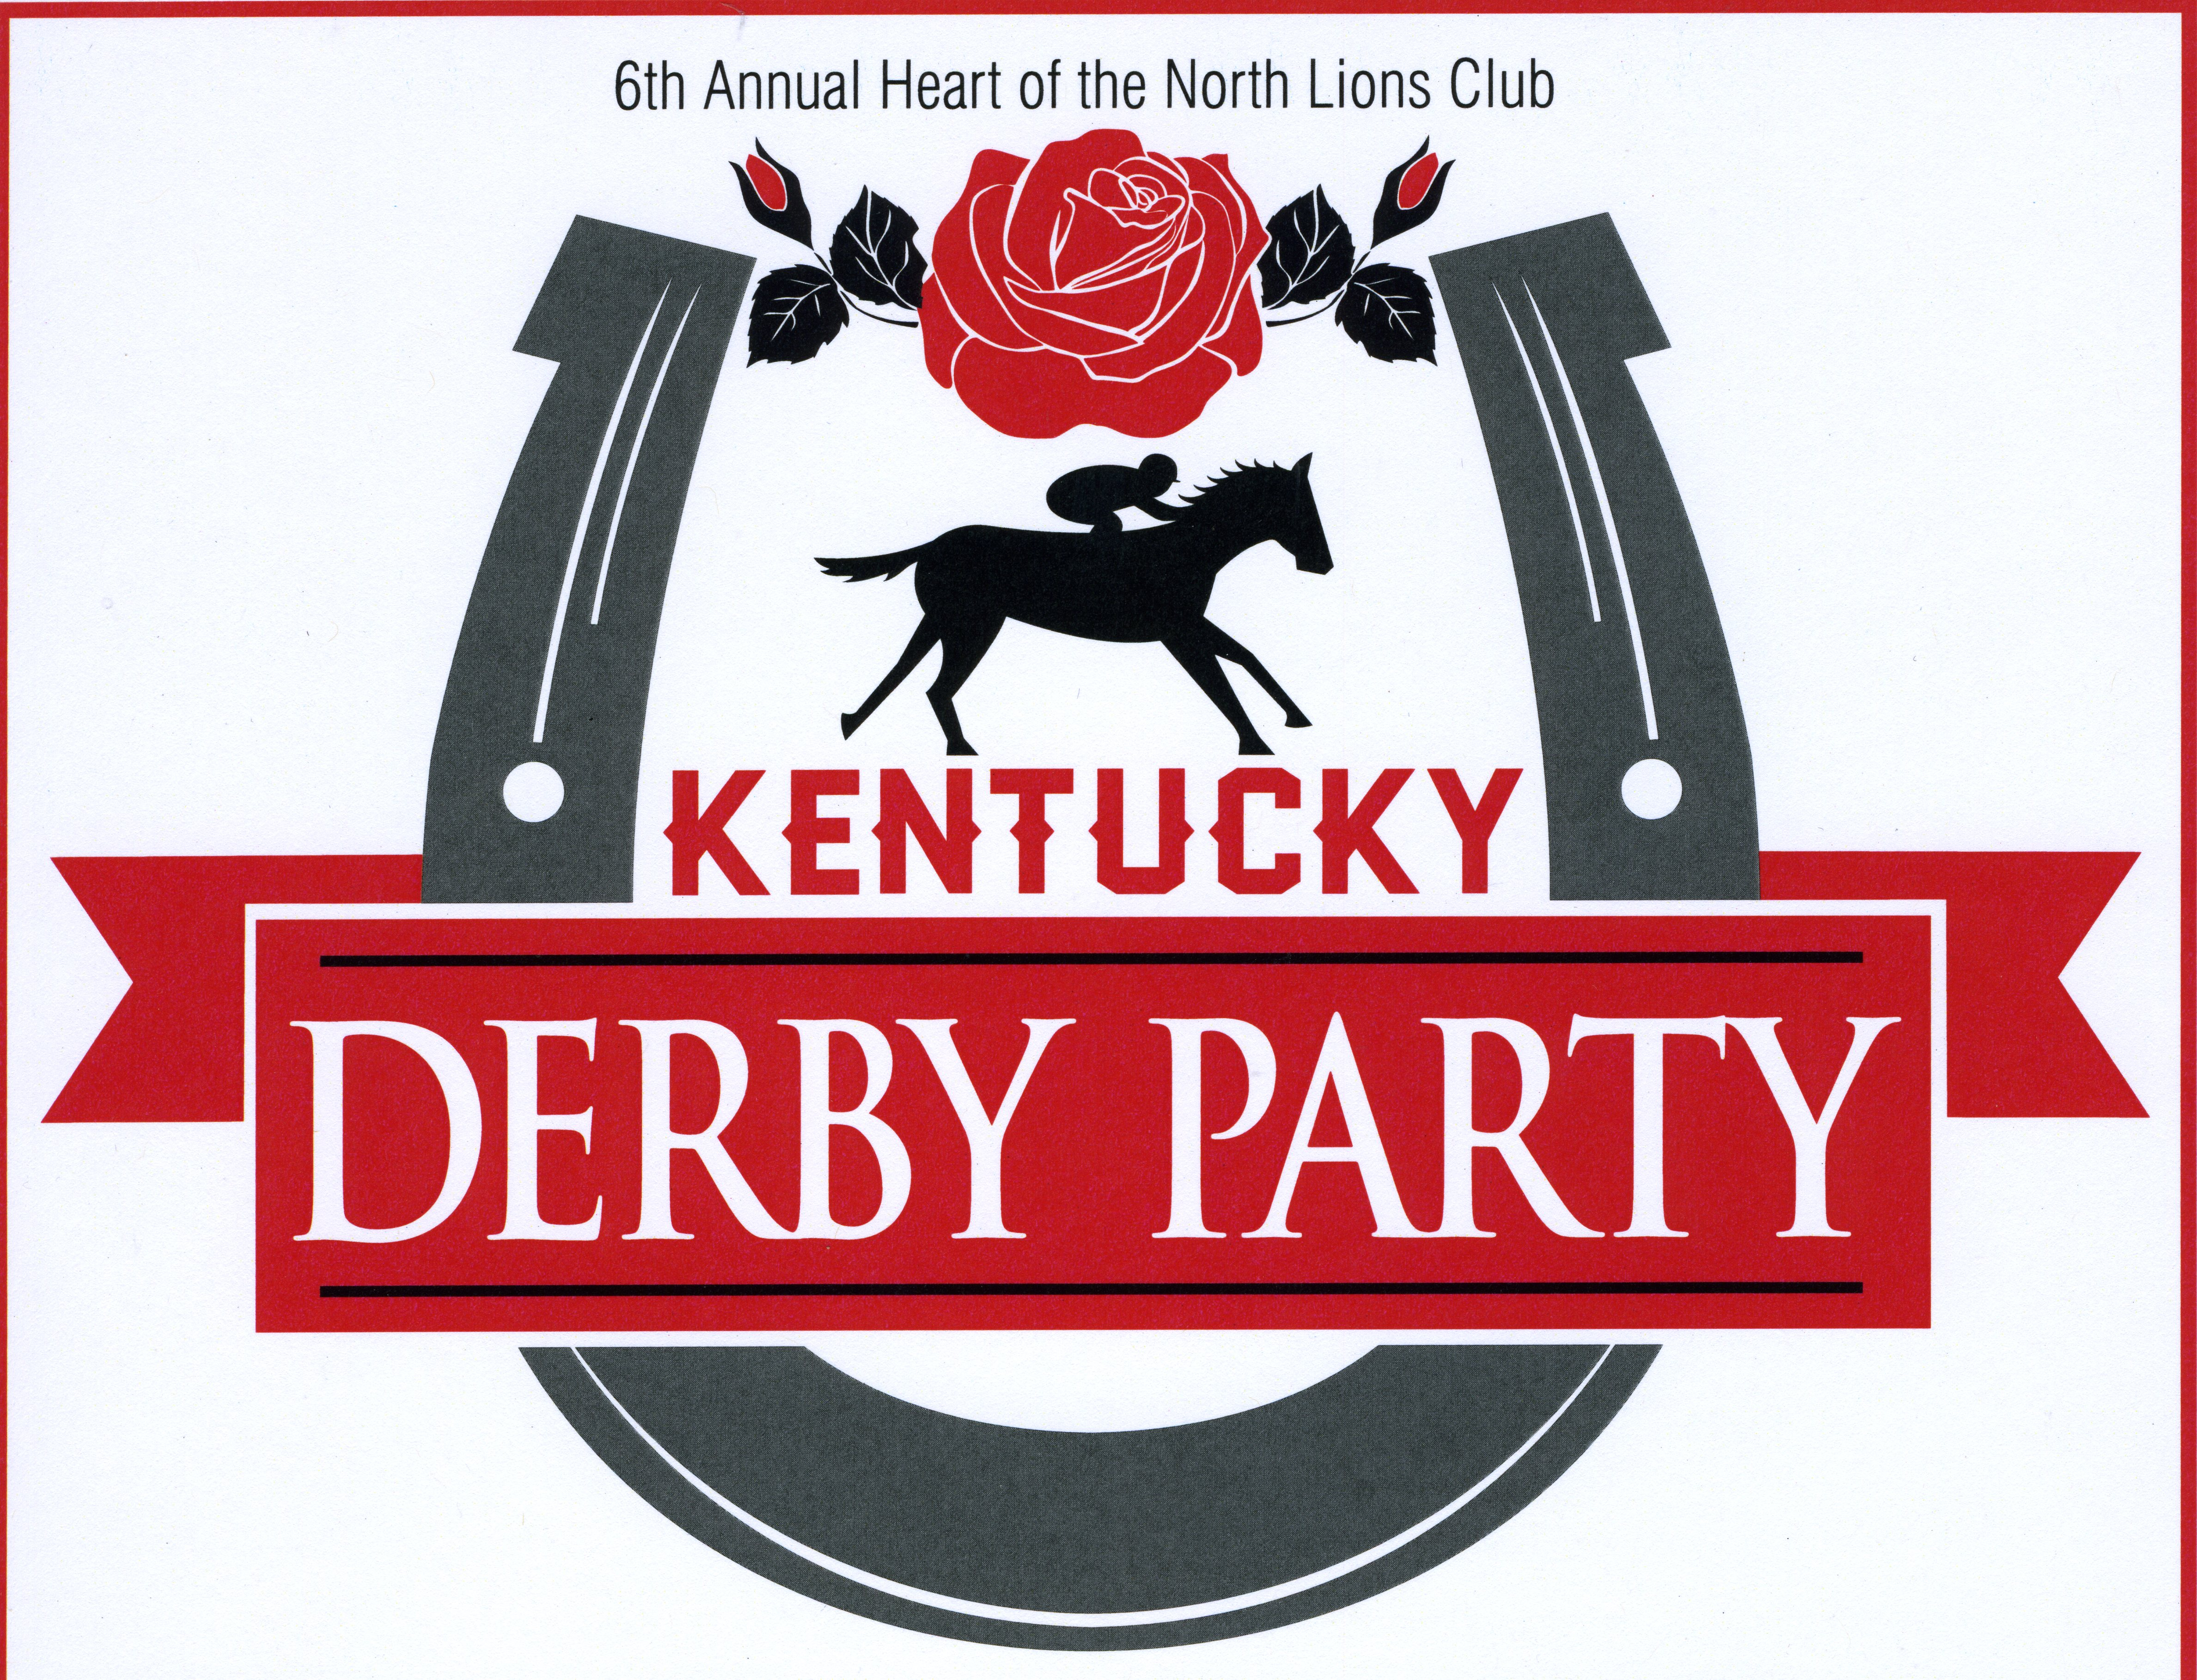 Heart Of The North Lions Kentucky Derby Party Set News Sports